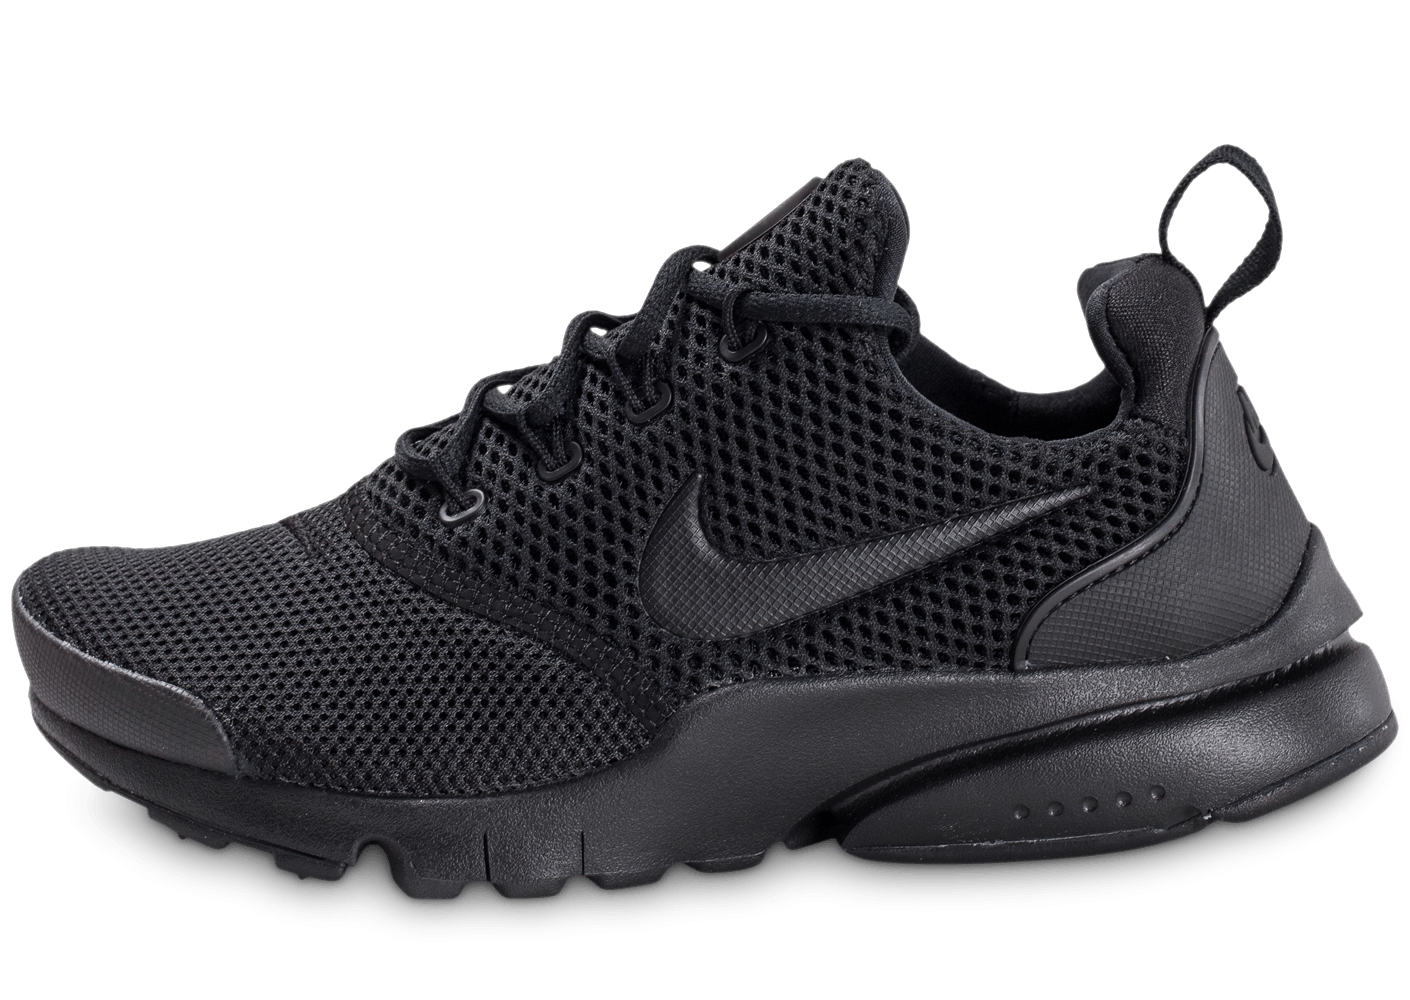 plus récent 6700c ff2af Nike Presto Fly Junior triple noir